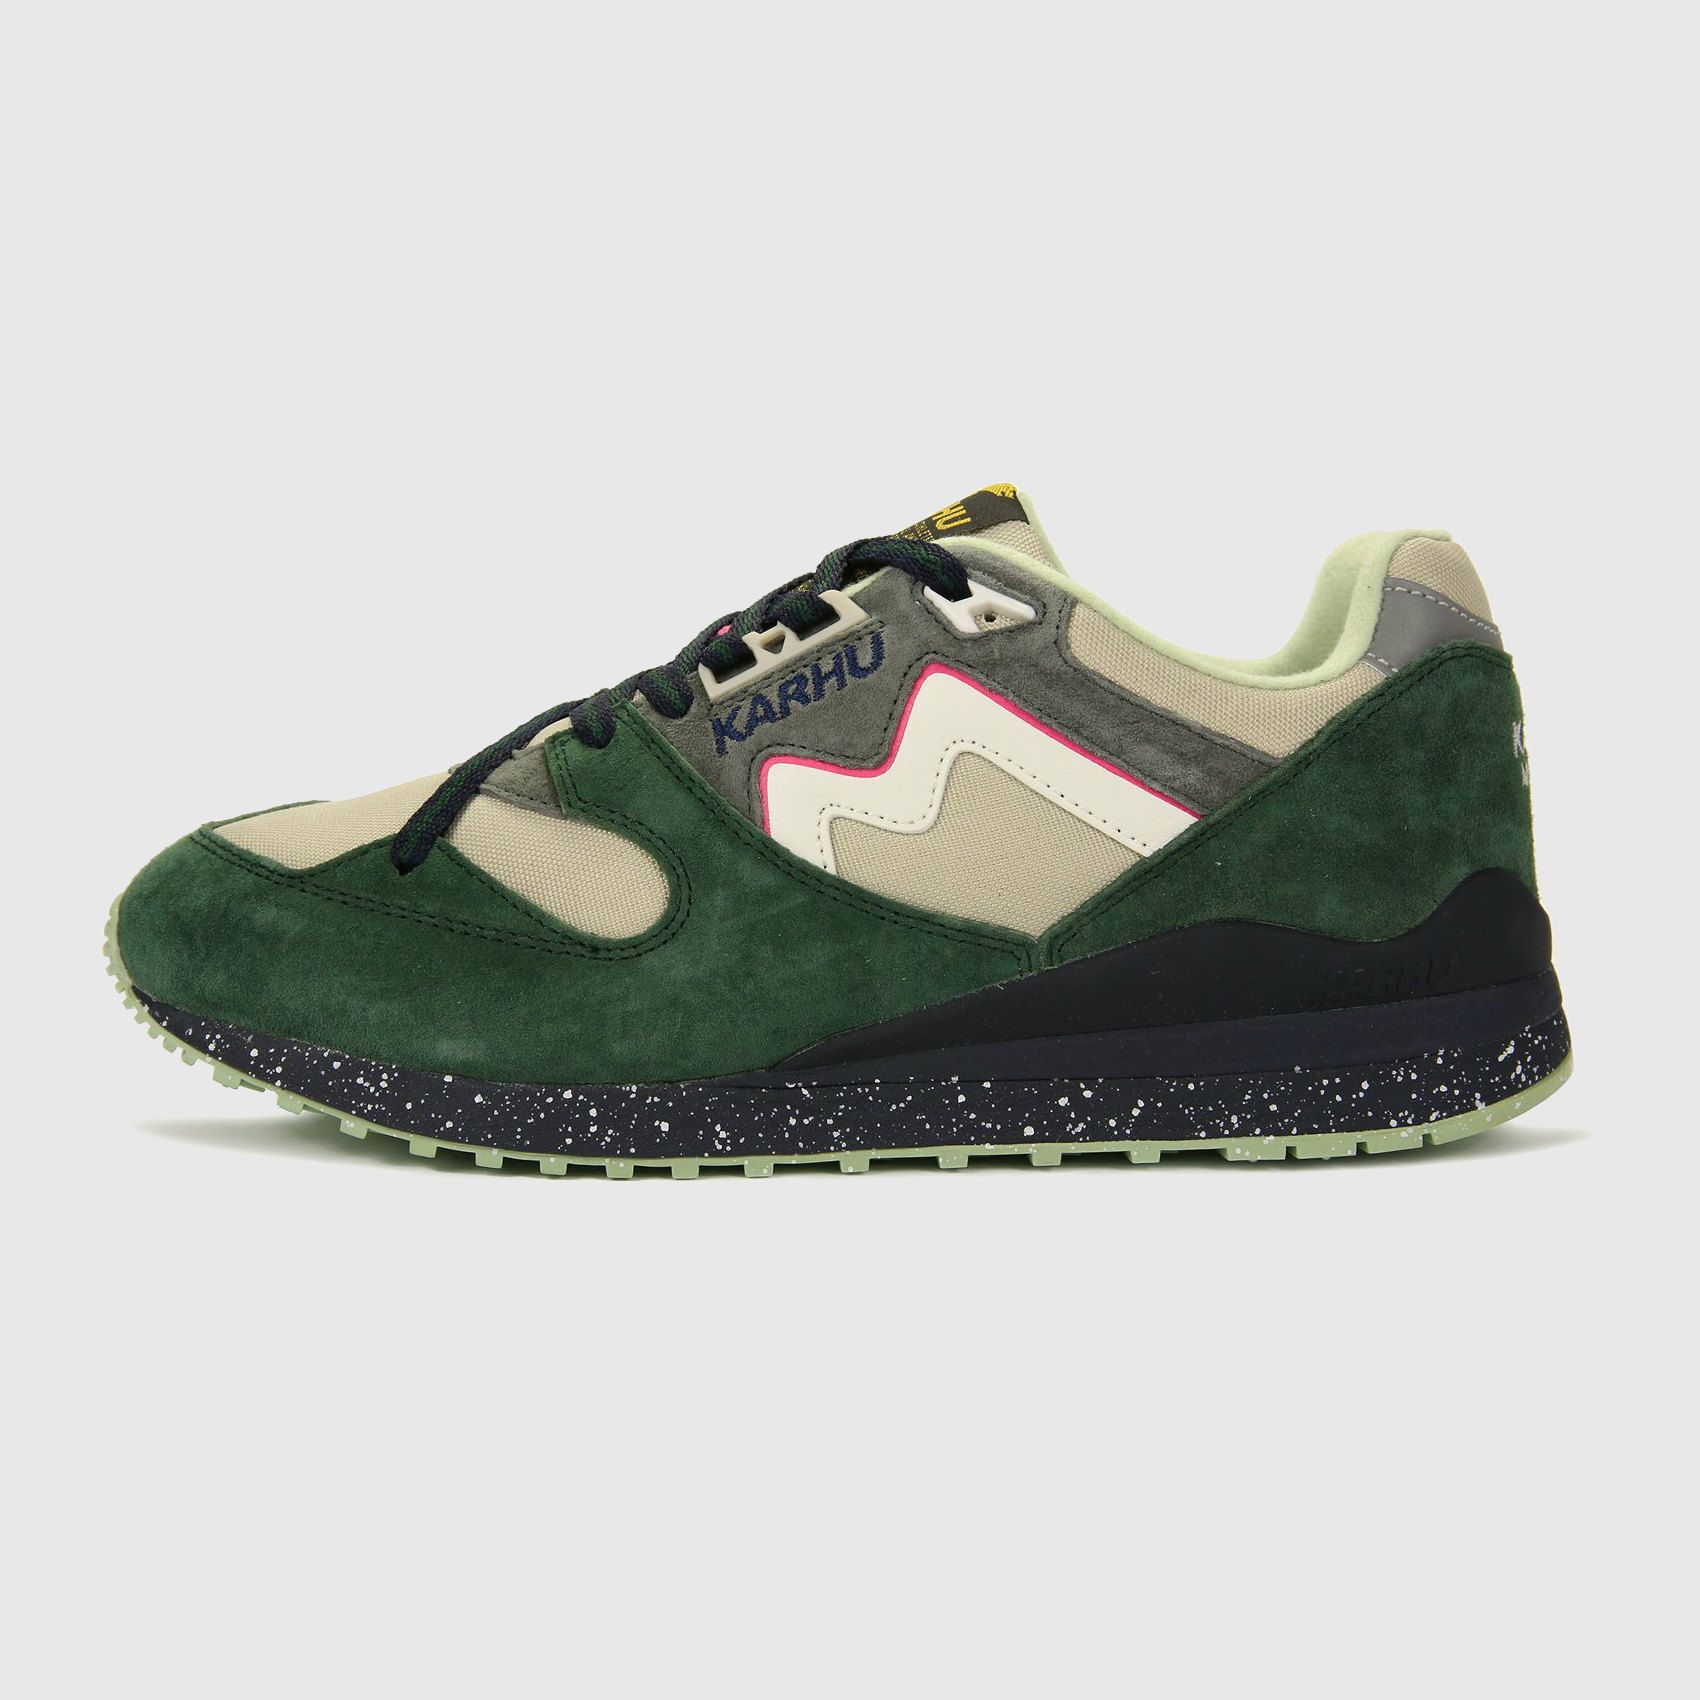 timeless design 09d34 3da4c Karhu Synchron Classic Winter - June Bug  Peyote